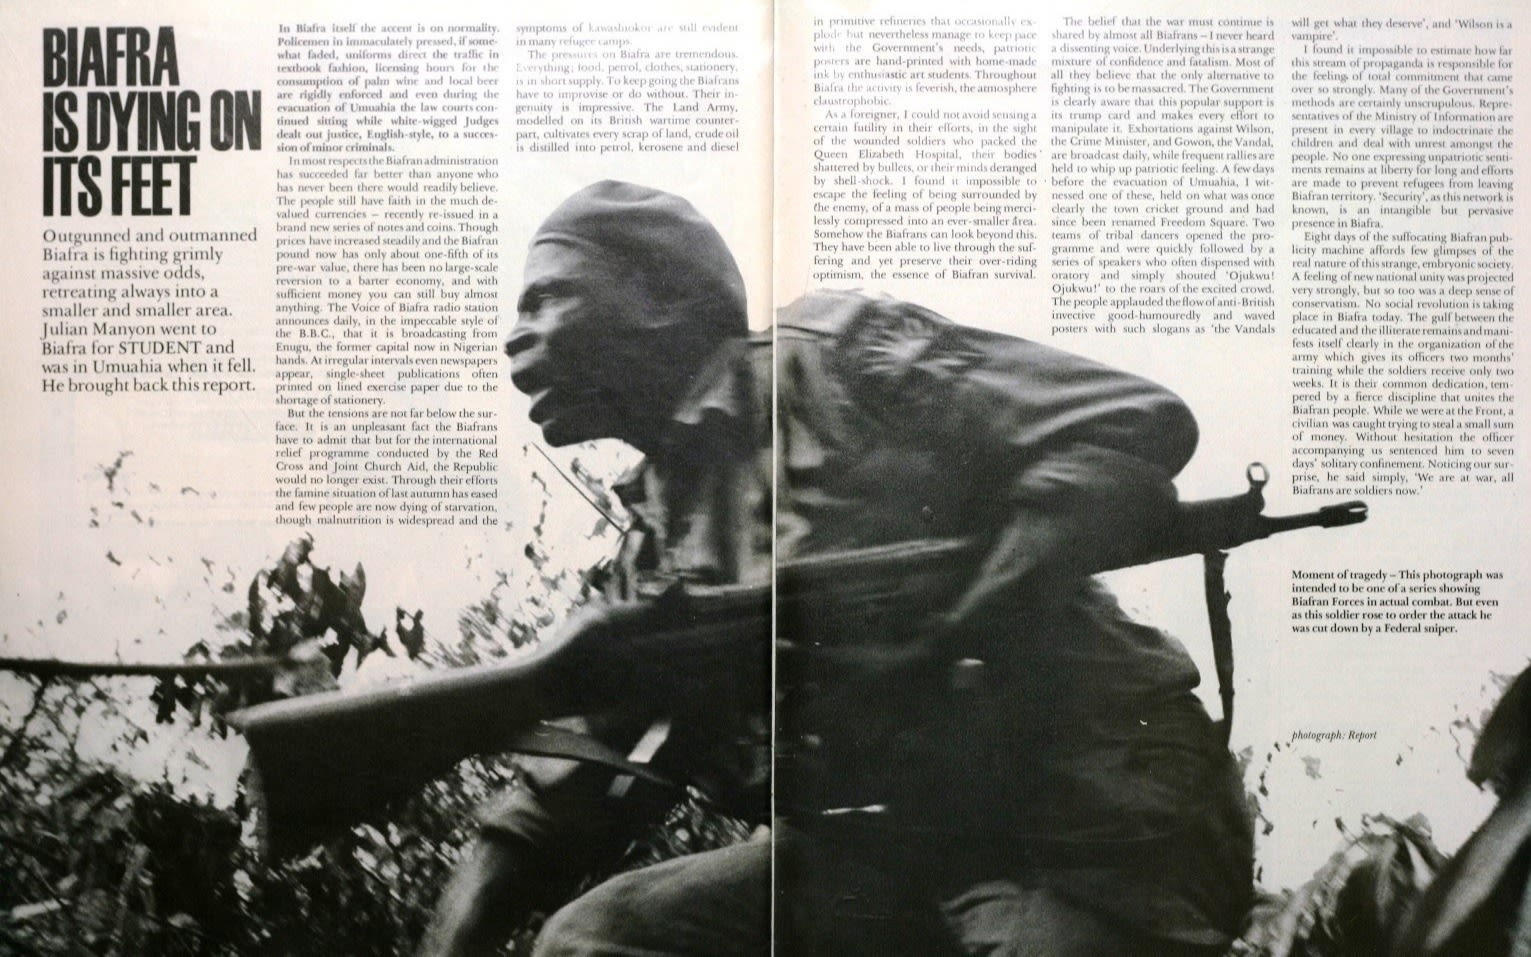 Image of a Student Magazine article entitled Biafra is dying on it's feet